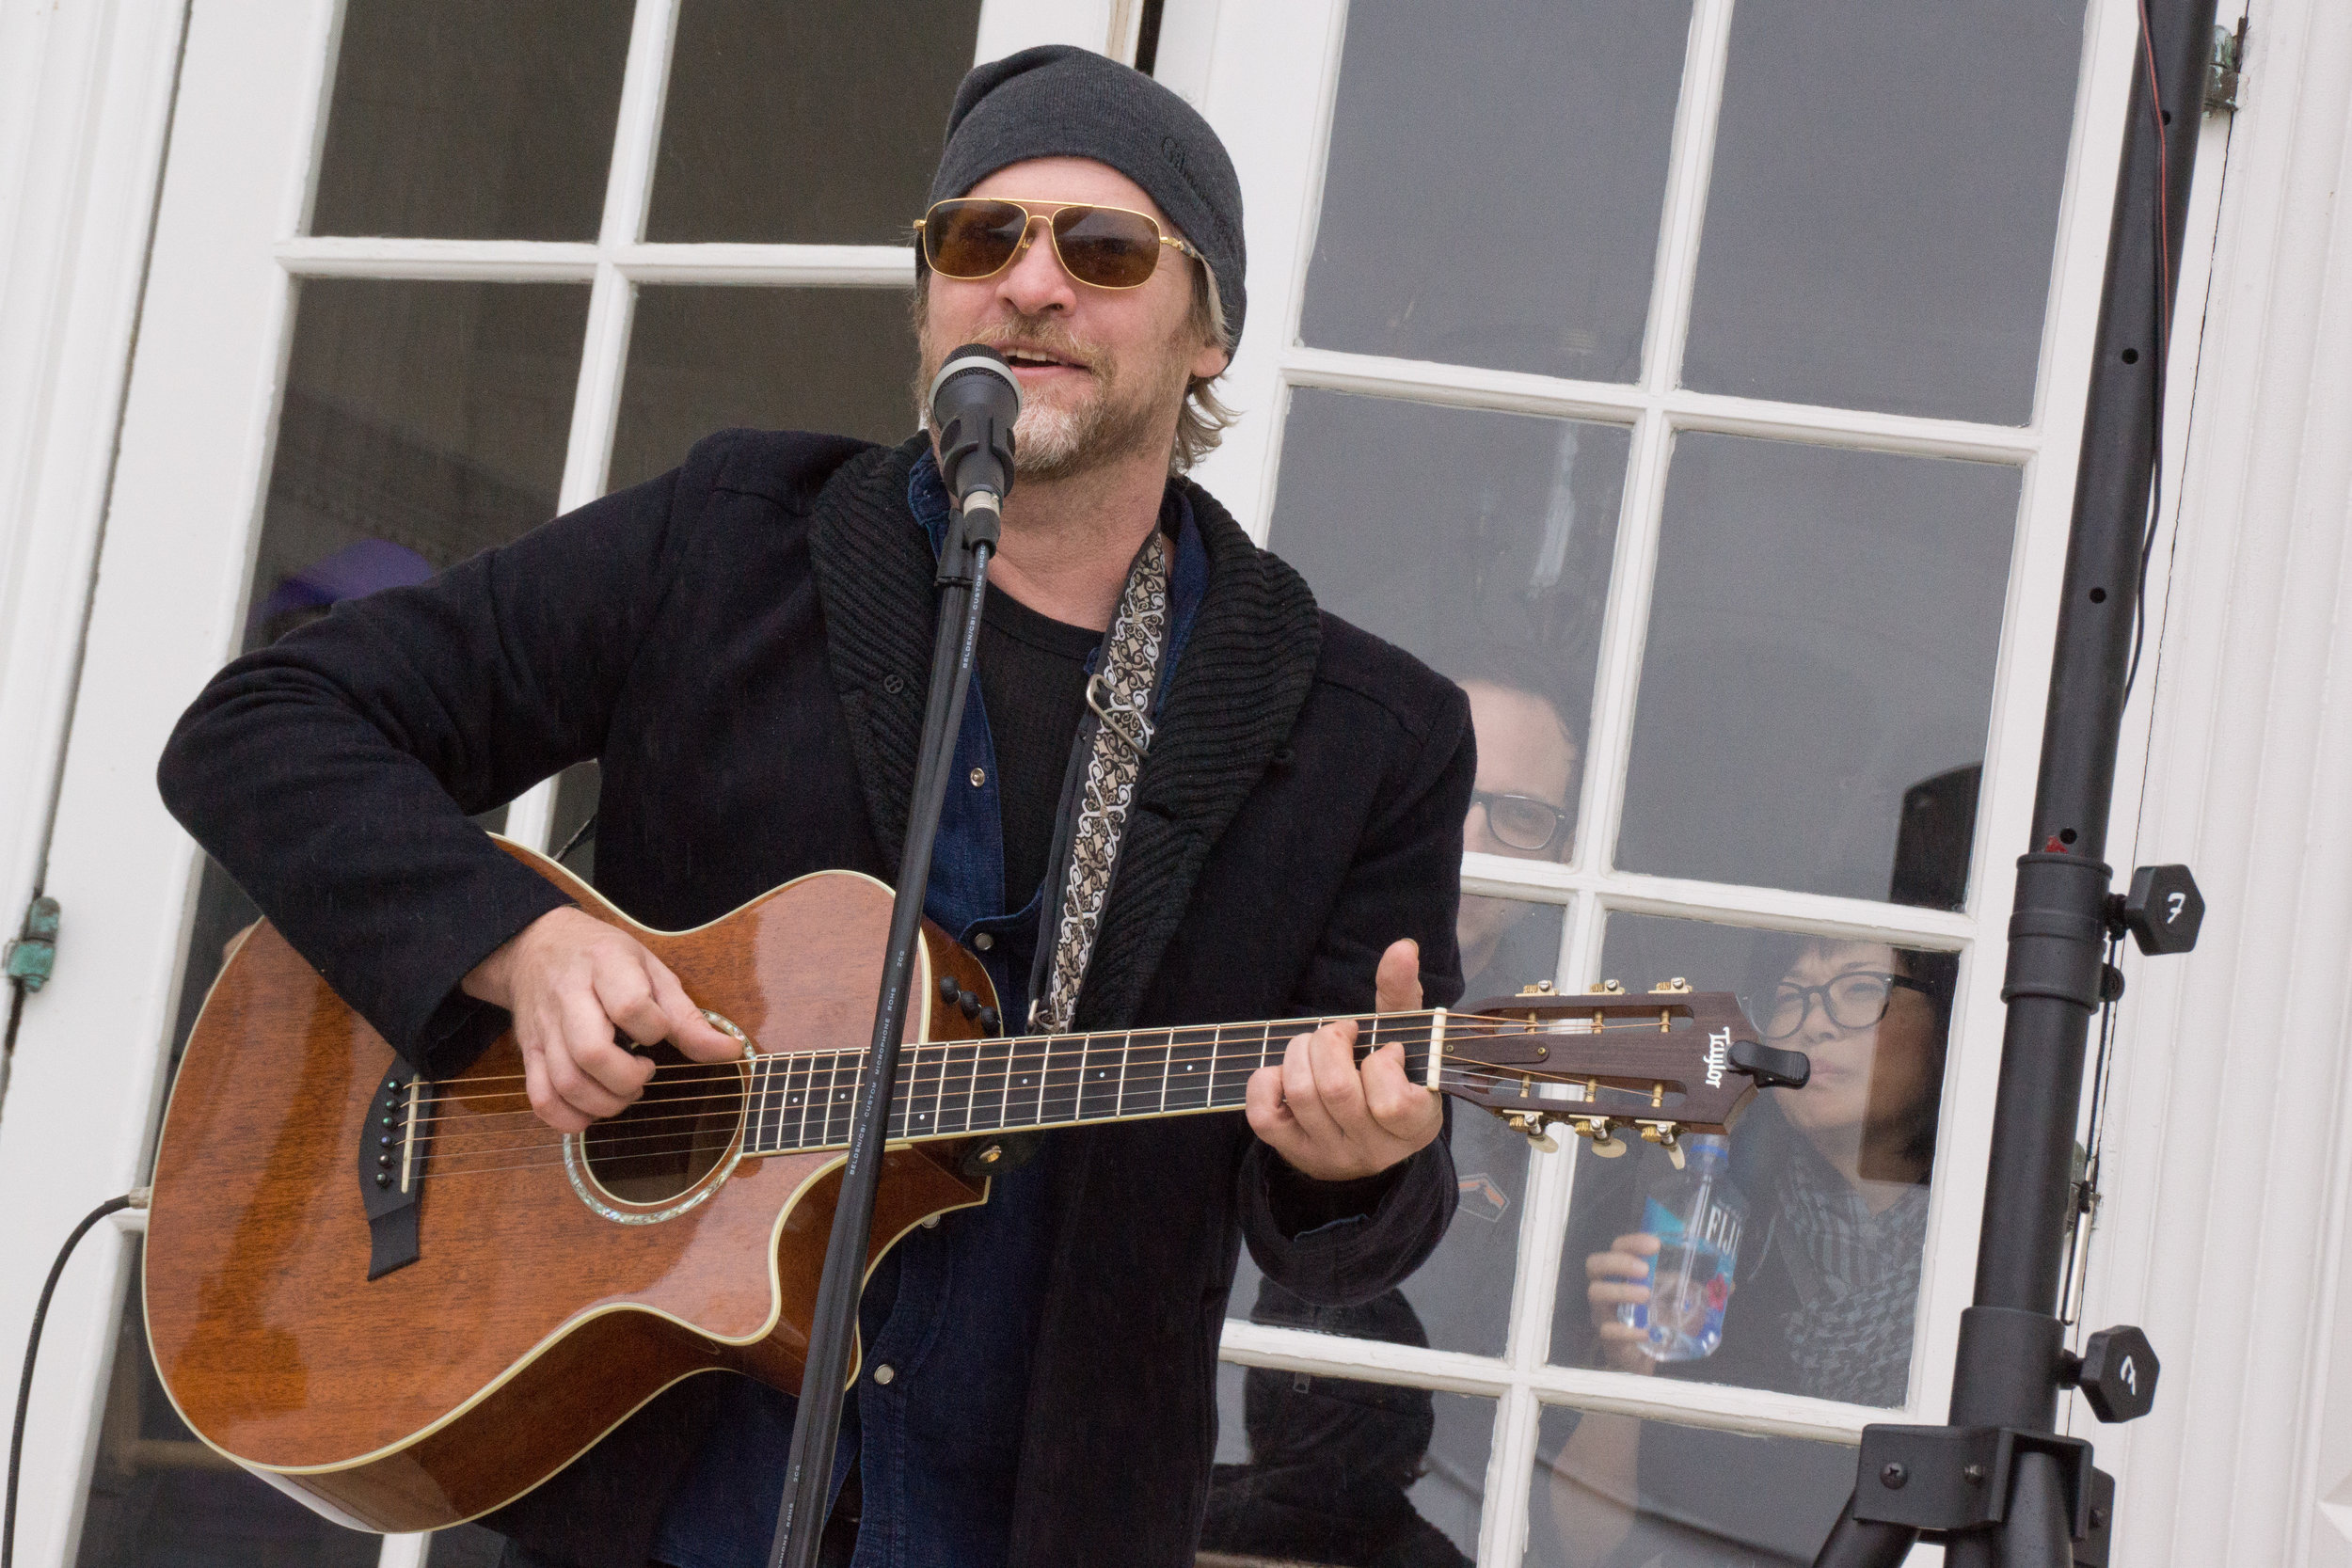 Todd Lowe - TODD DELIGHTS US WITH HIS PRESENCE EVERY YEAR AT GGFF! HE MAKES US LAUGH, ENTERTAINS US WITH HIS GUITAR & GENUINELY REMINDS US WHY LANE WAS SO SMITTEN WITH HIM.